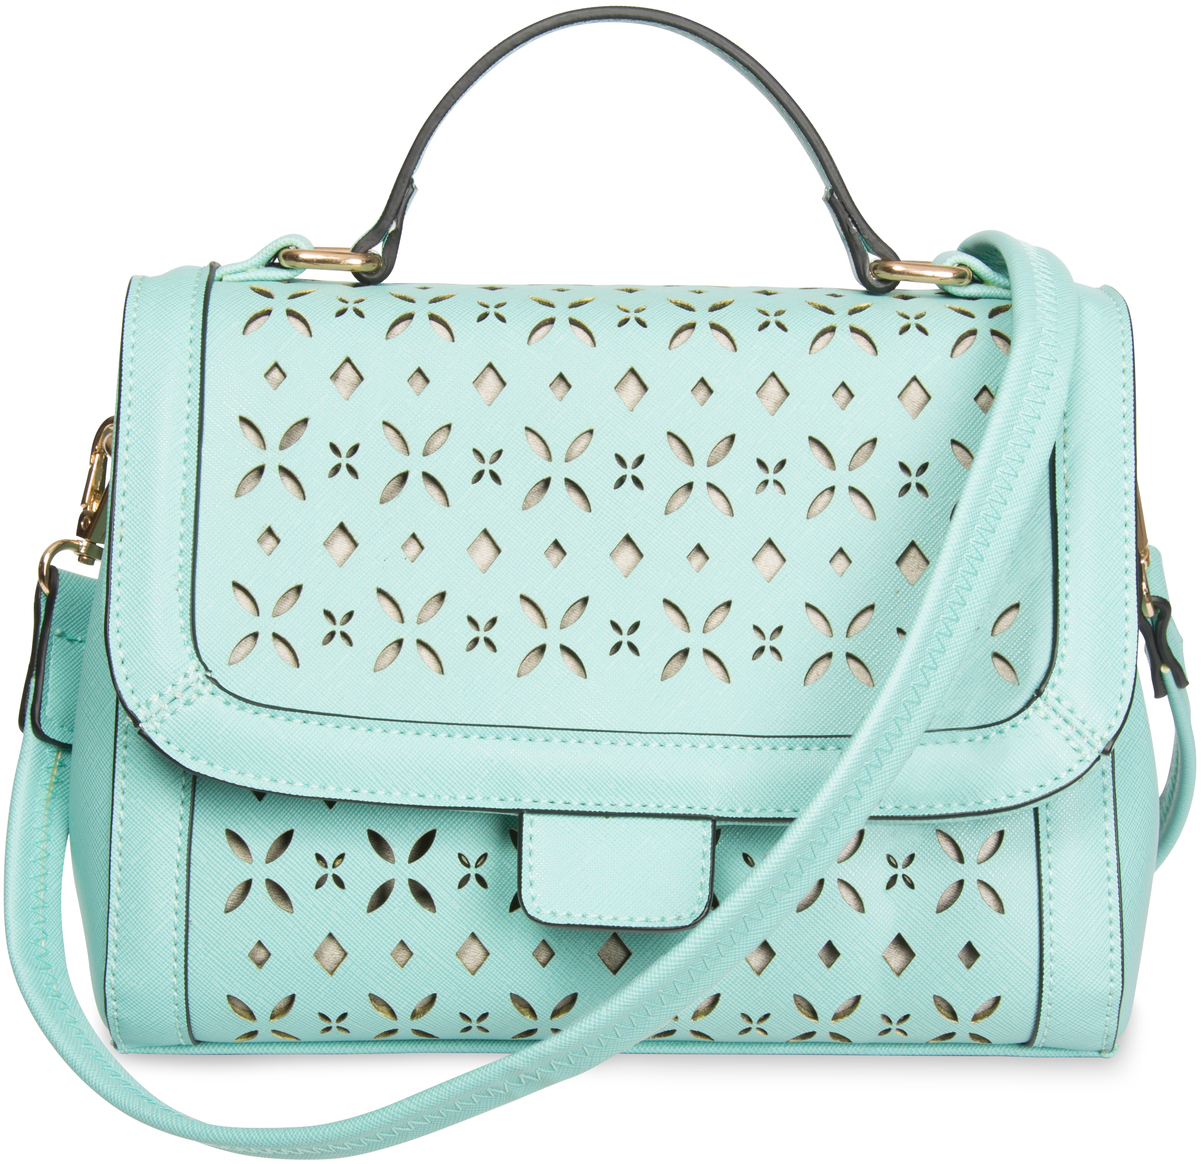 "Aqua by H2Z Laser Cut Handbags - Aqua - 10.25"" x 4.75"" x 8"" Laser Cut Mini Messenger"